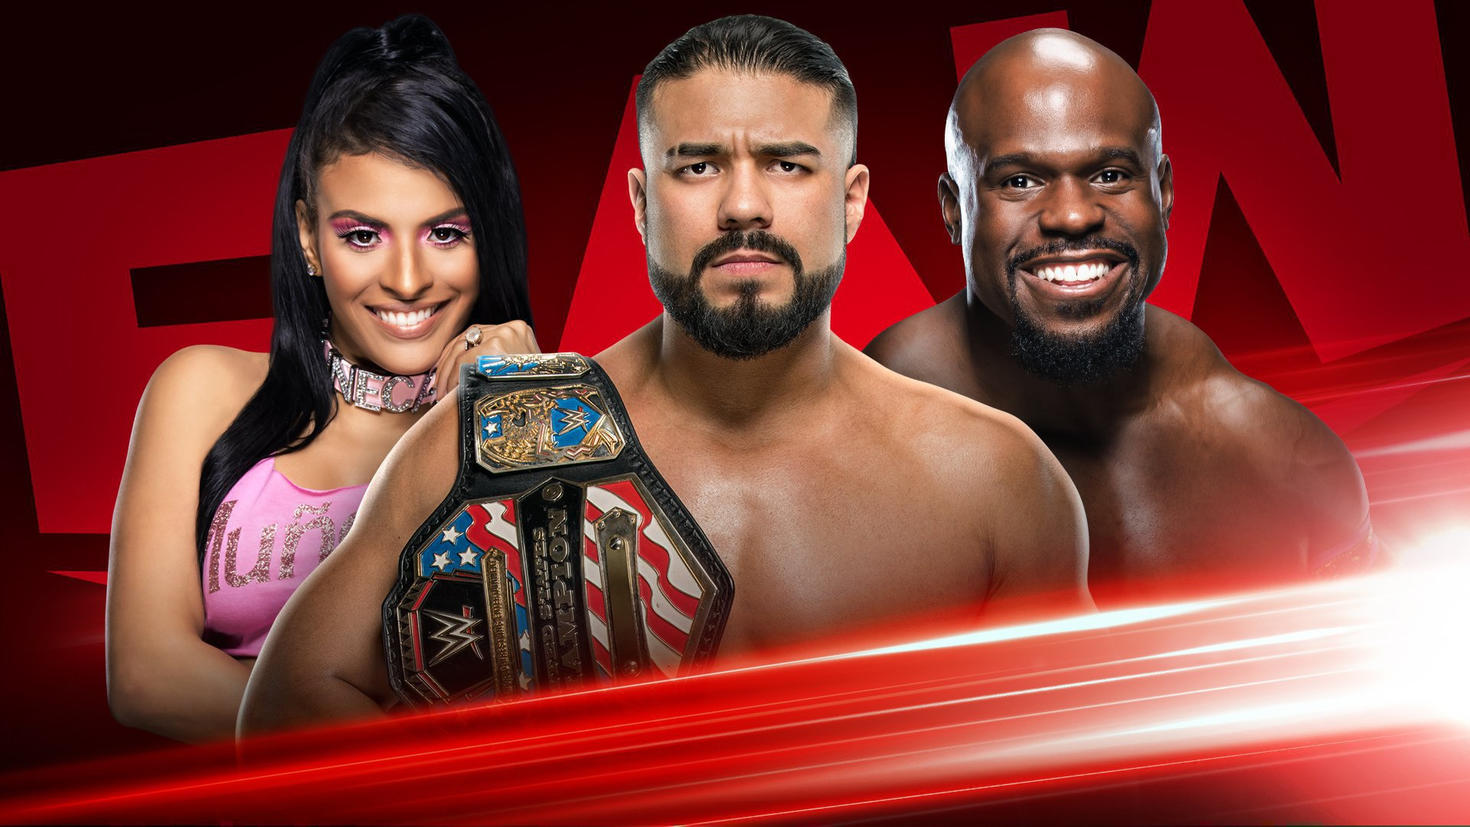 WWE Raw Preview (25/05/20): US Title Match, McIntyre-VIP Lounge, Triple Threat 2